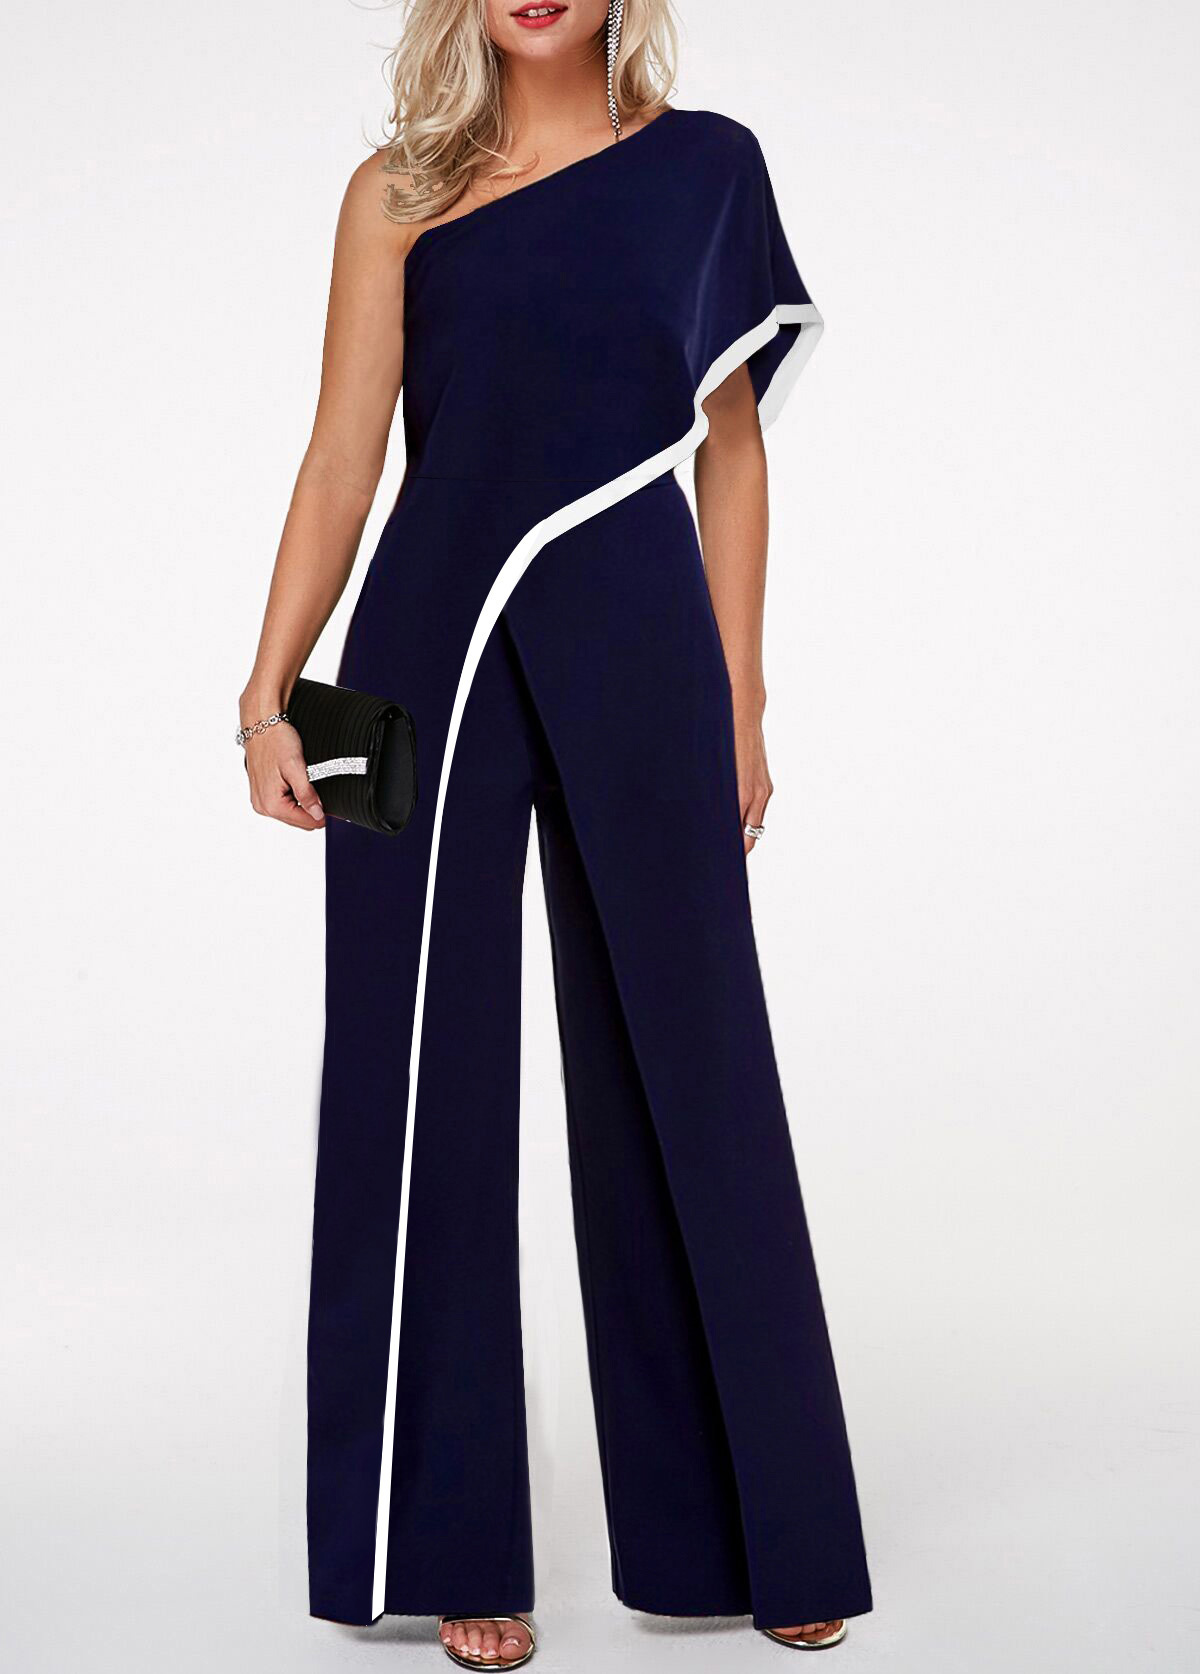 One Shoulder Contrast Trim Navy Blue Jumpsuit